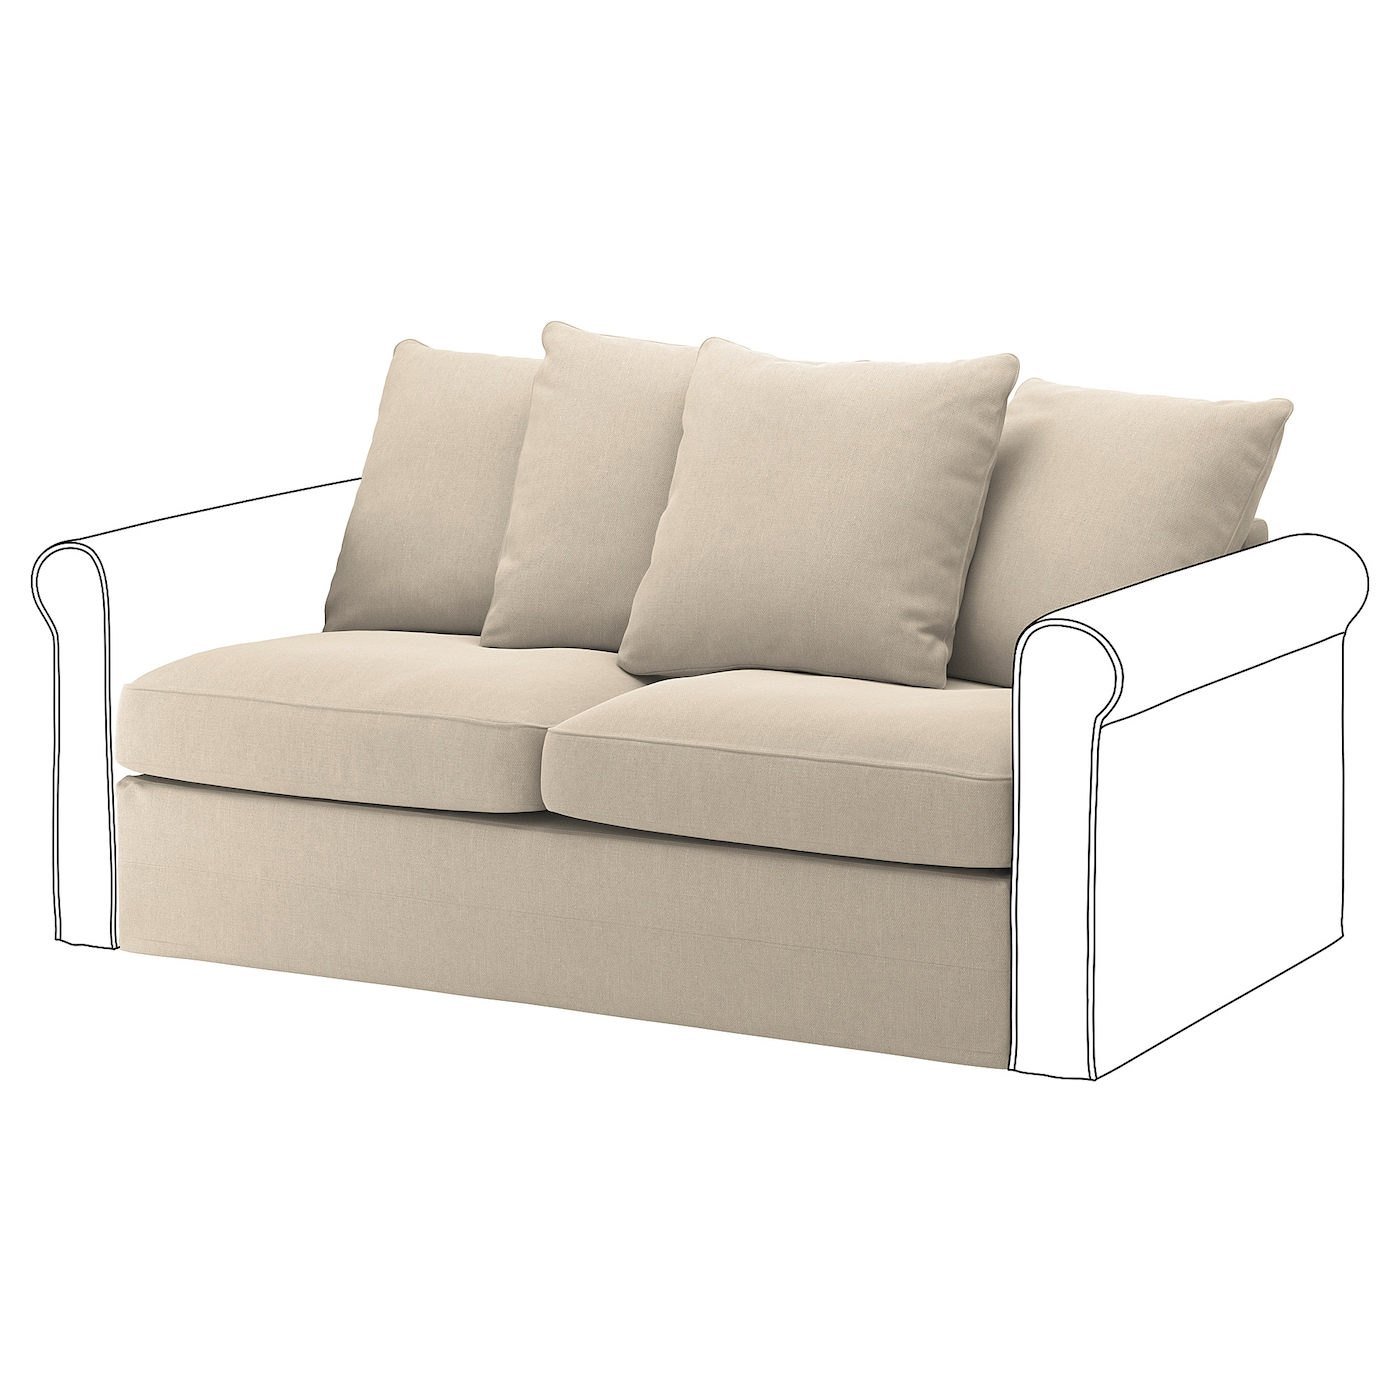 GrÖnlid 2 Seat Sofa Bed Section